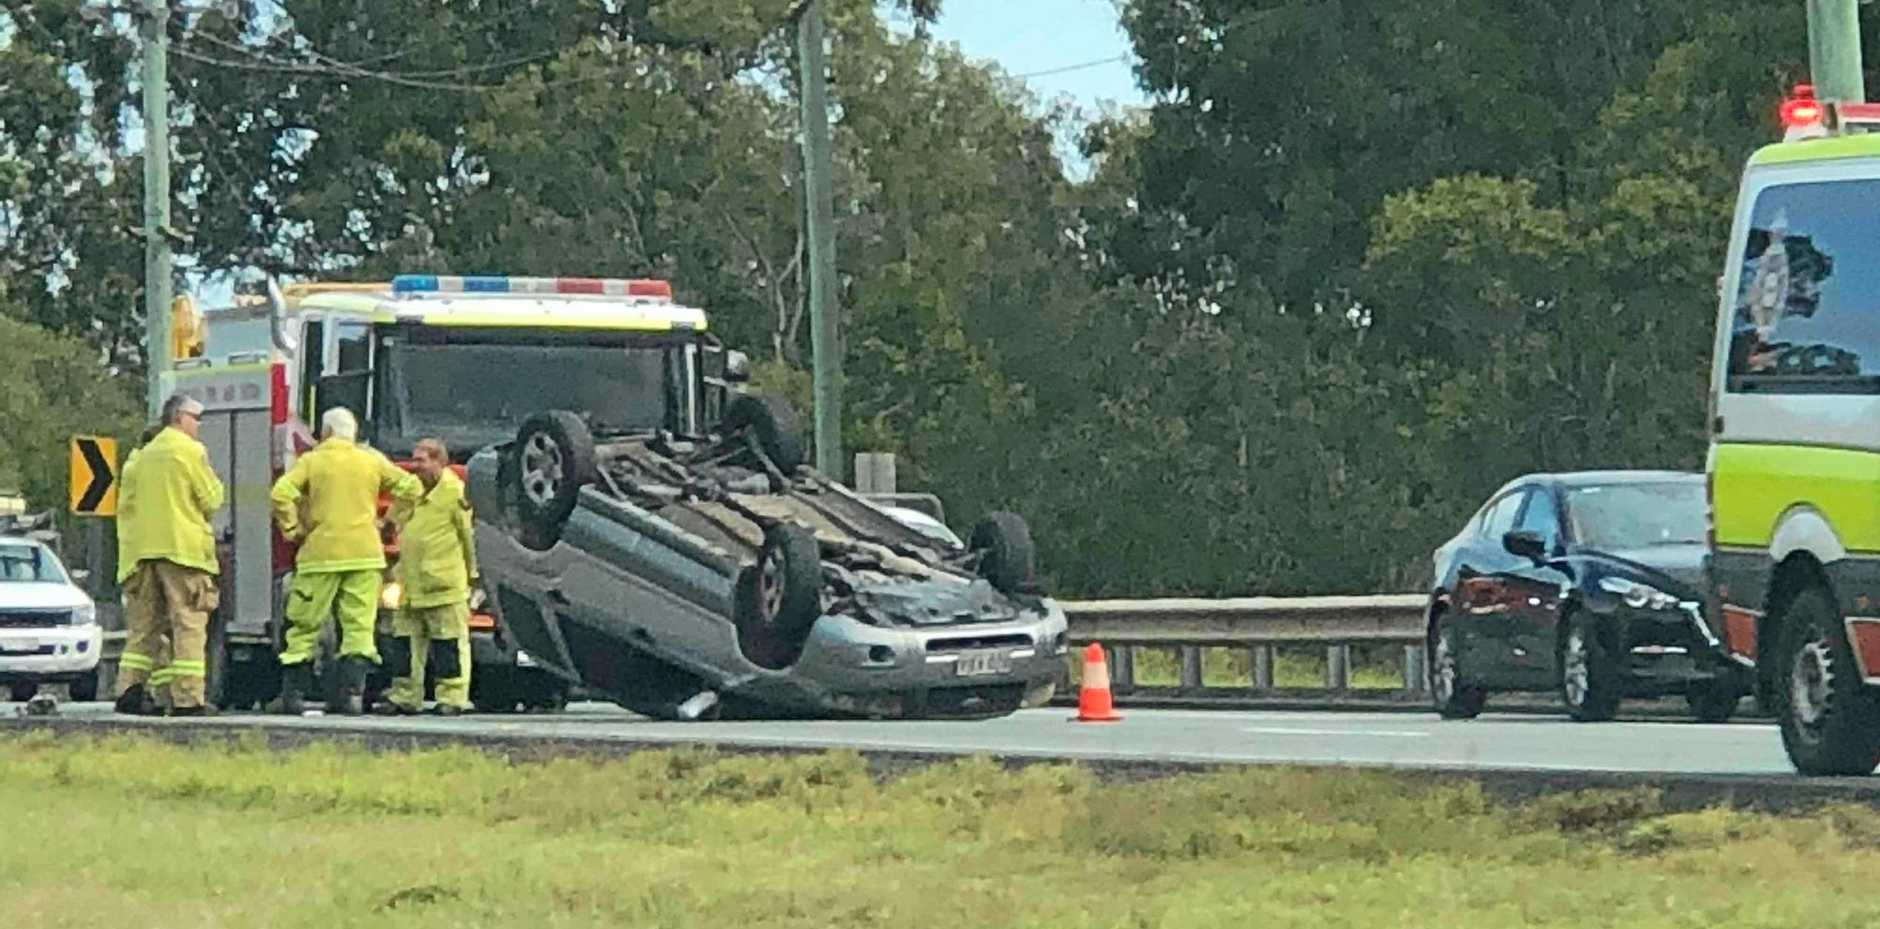 A man escaped serious injury despite being involved in this single vehicle rollover on the Warrego Highway on Friday, June 8.